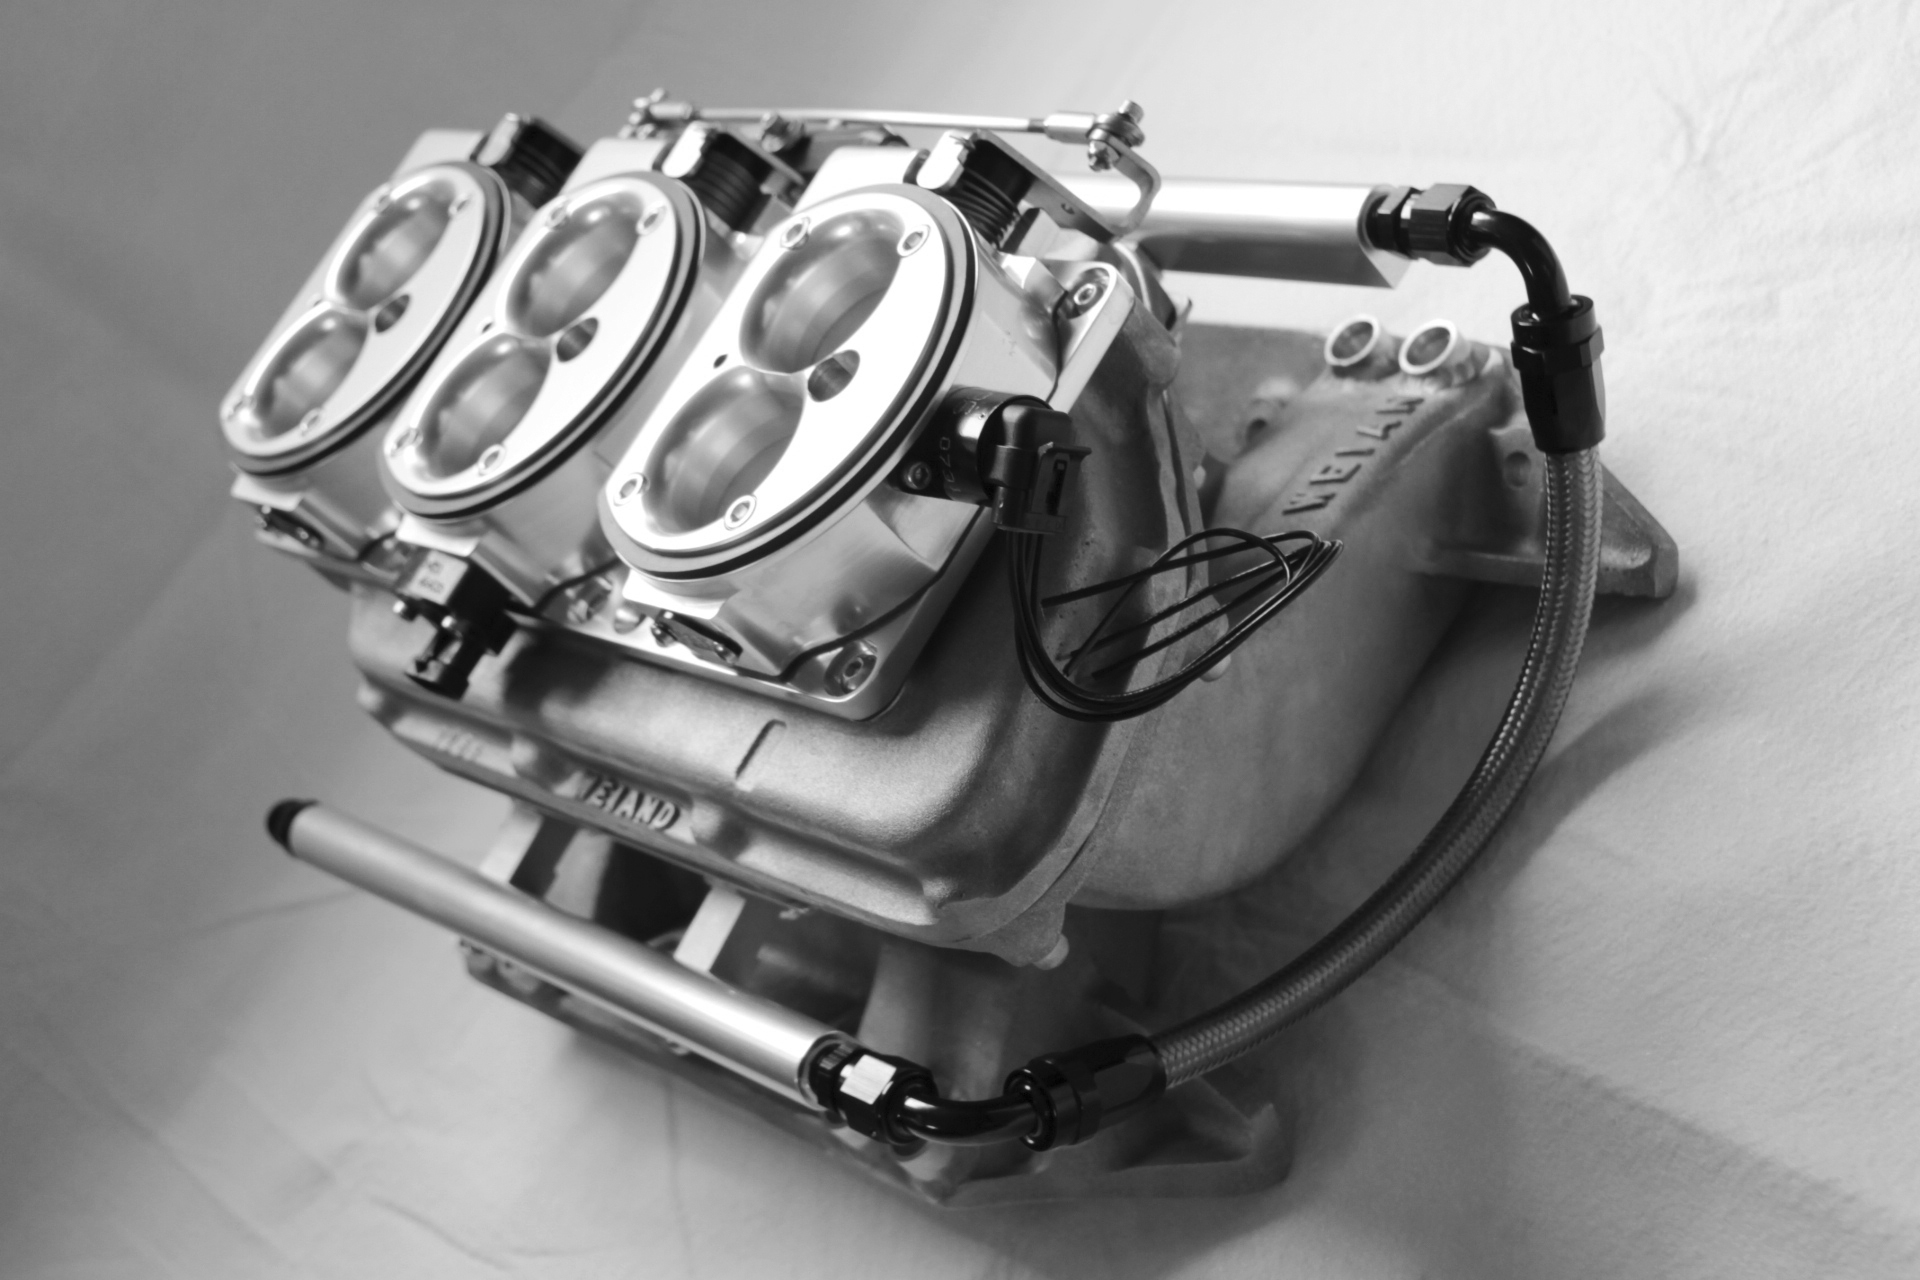 ae69108c4 Weiand Two Piece Six Pack Super Stock Manifold Converted to Multi-point EFI